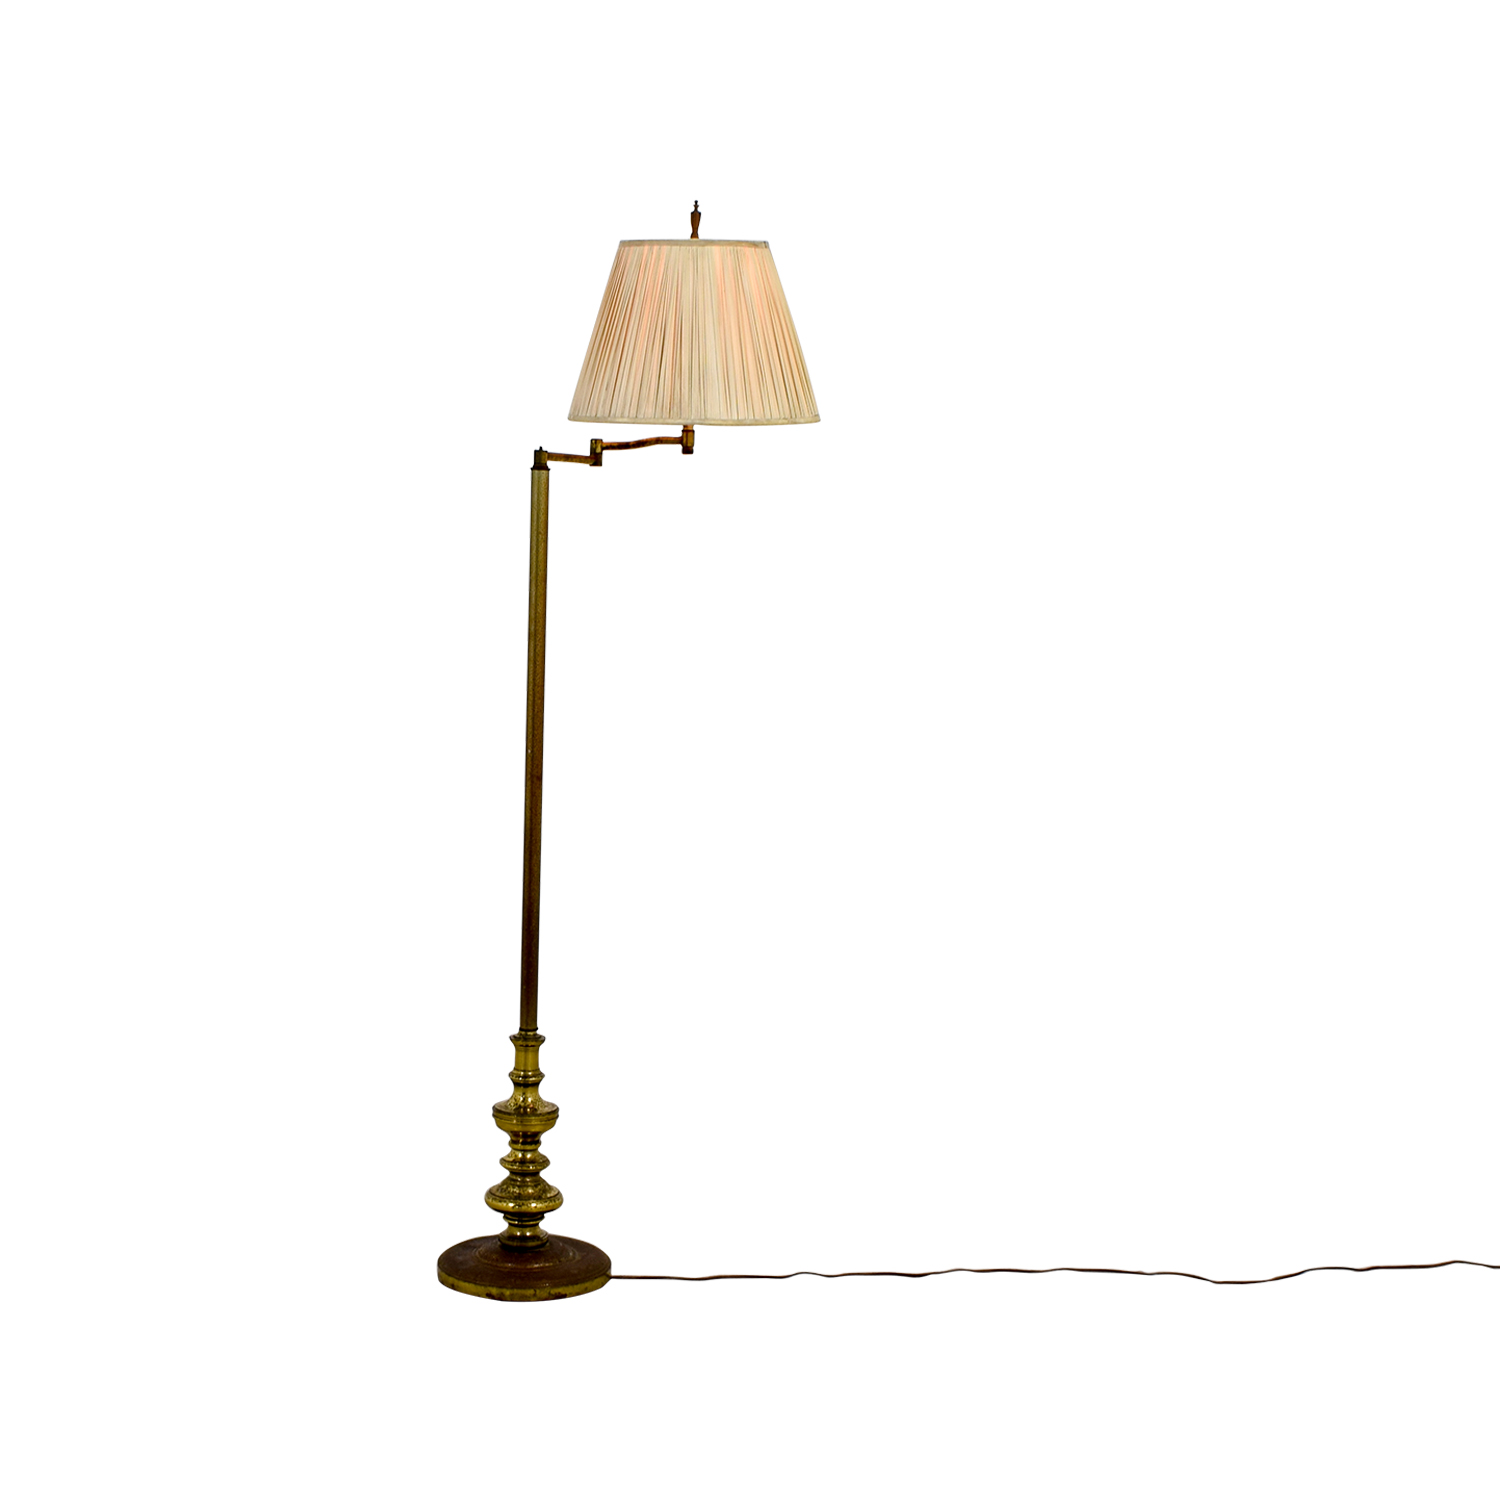 81 off brass floor lamp with accordion shade decor shop brass floor lamp with accordion shade aloadofball Gallery